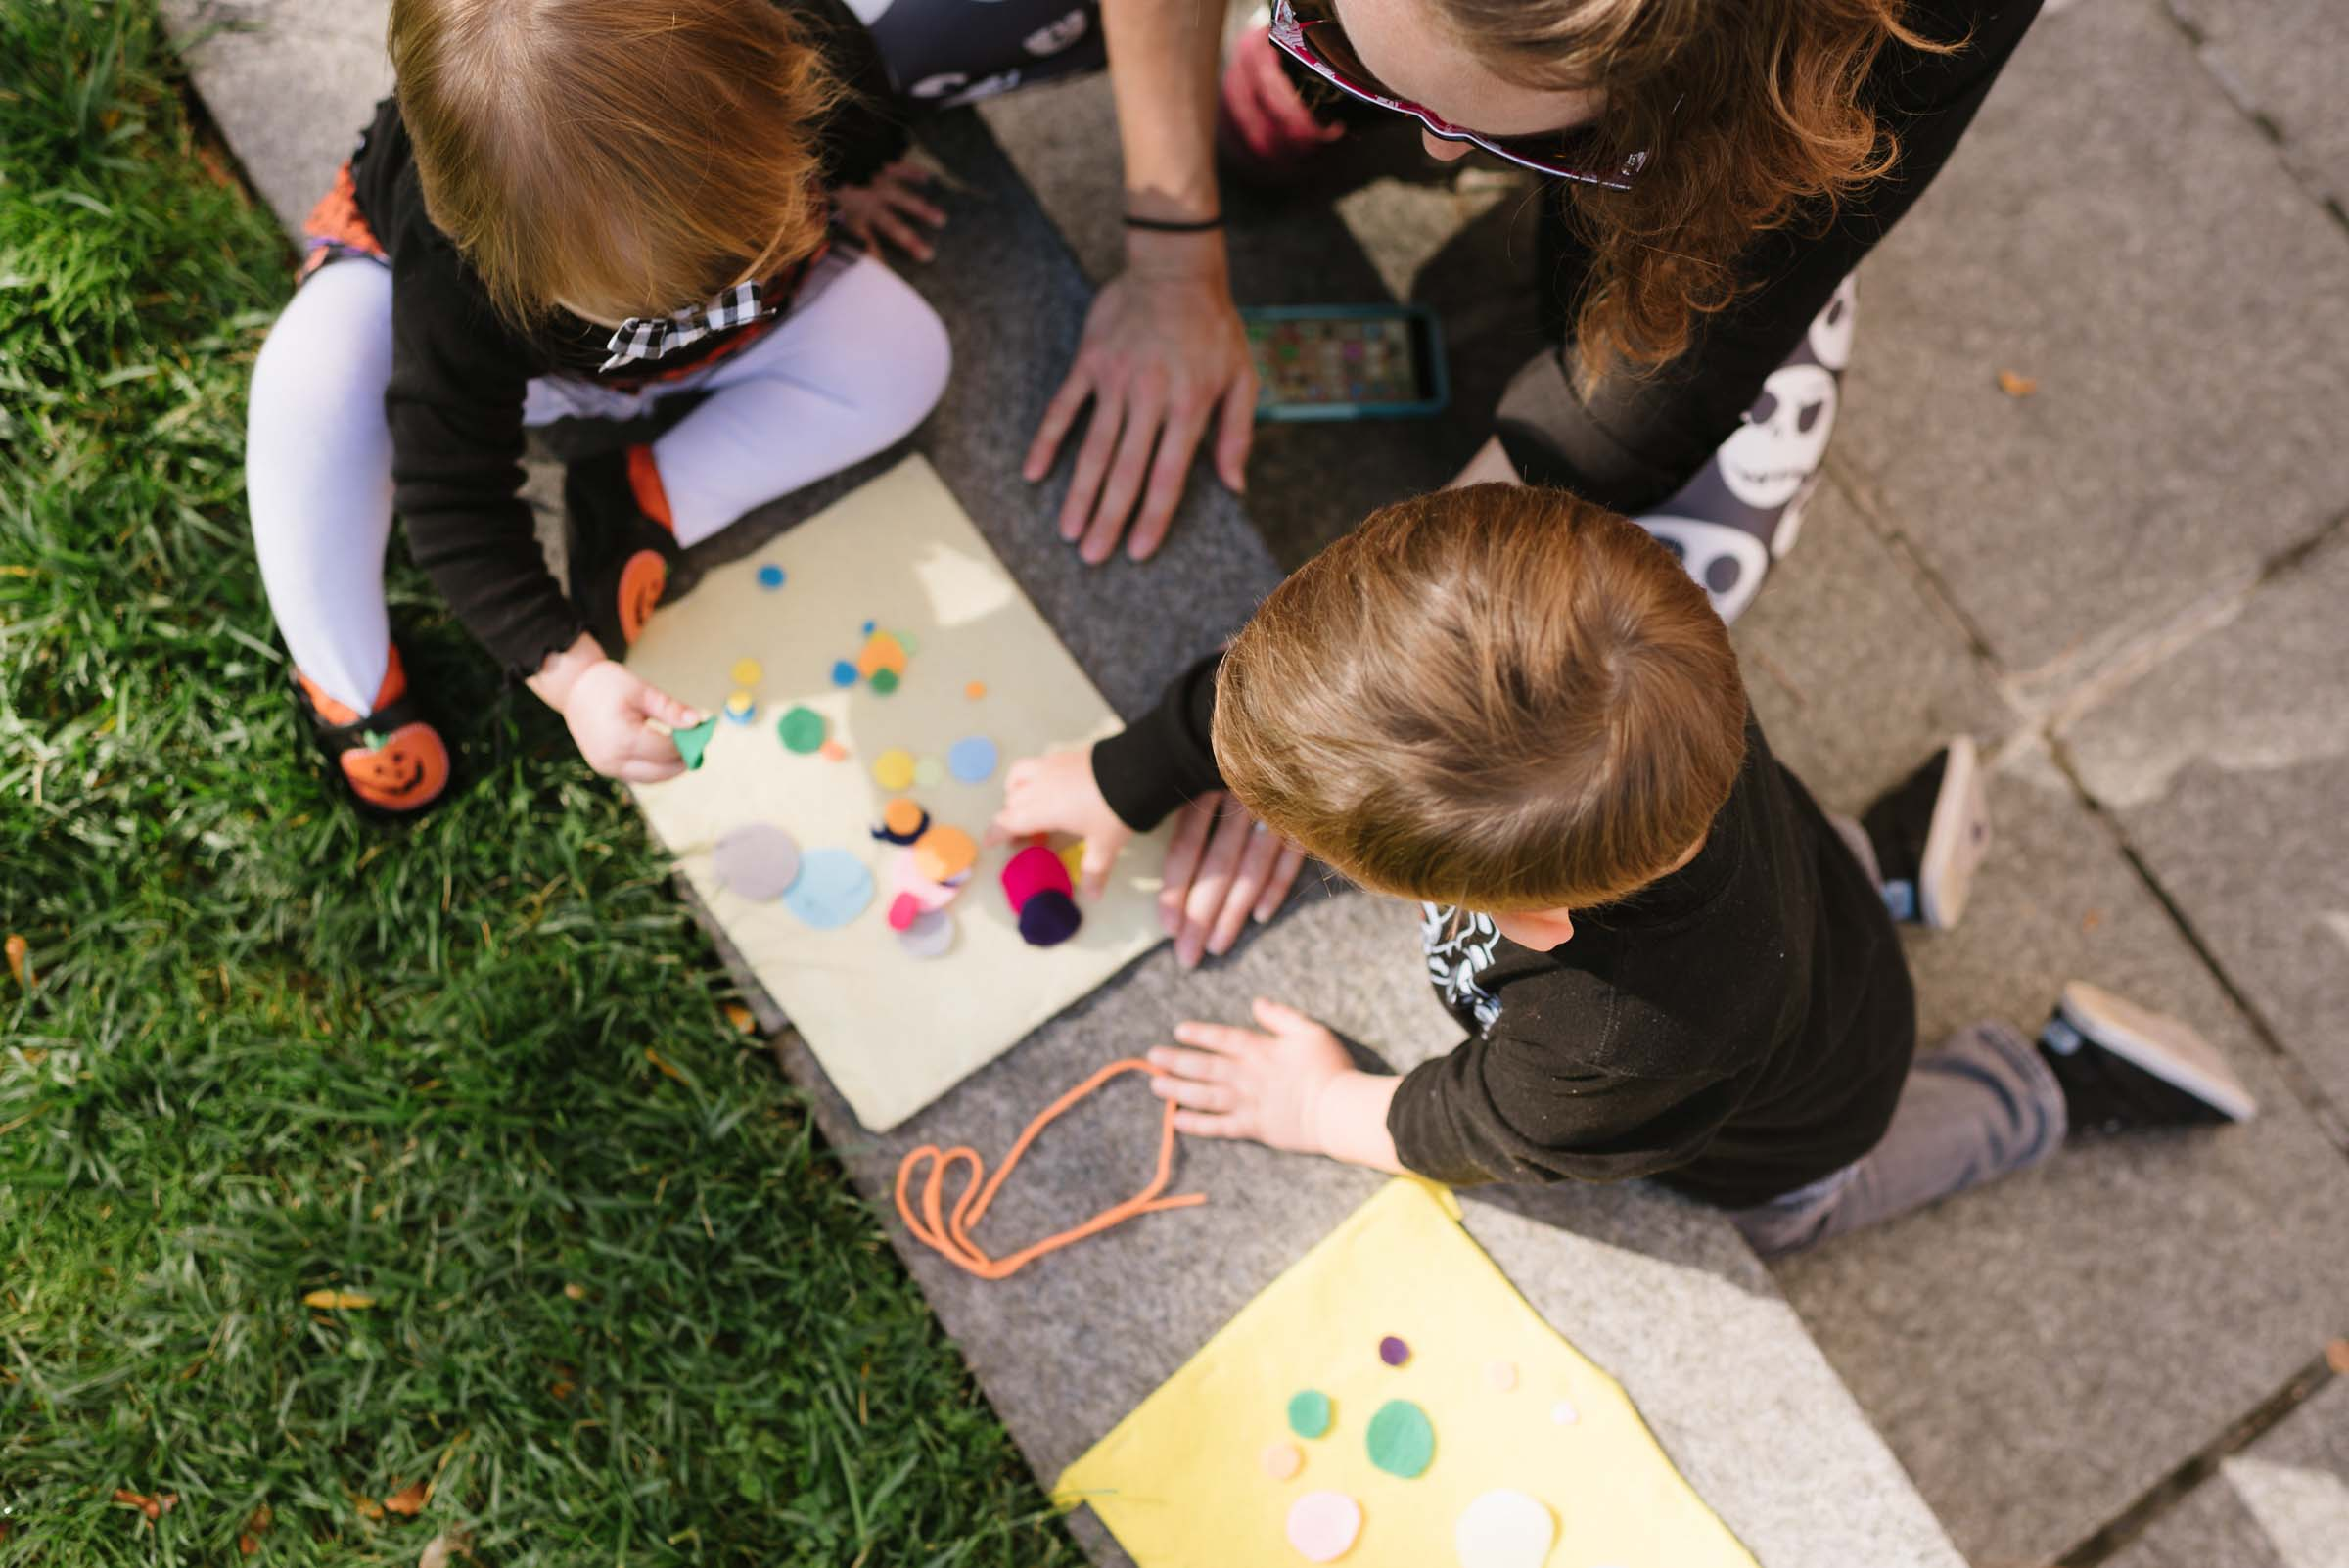 Children participating in hands on activities on the plaza